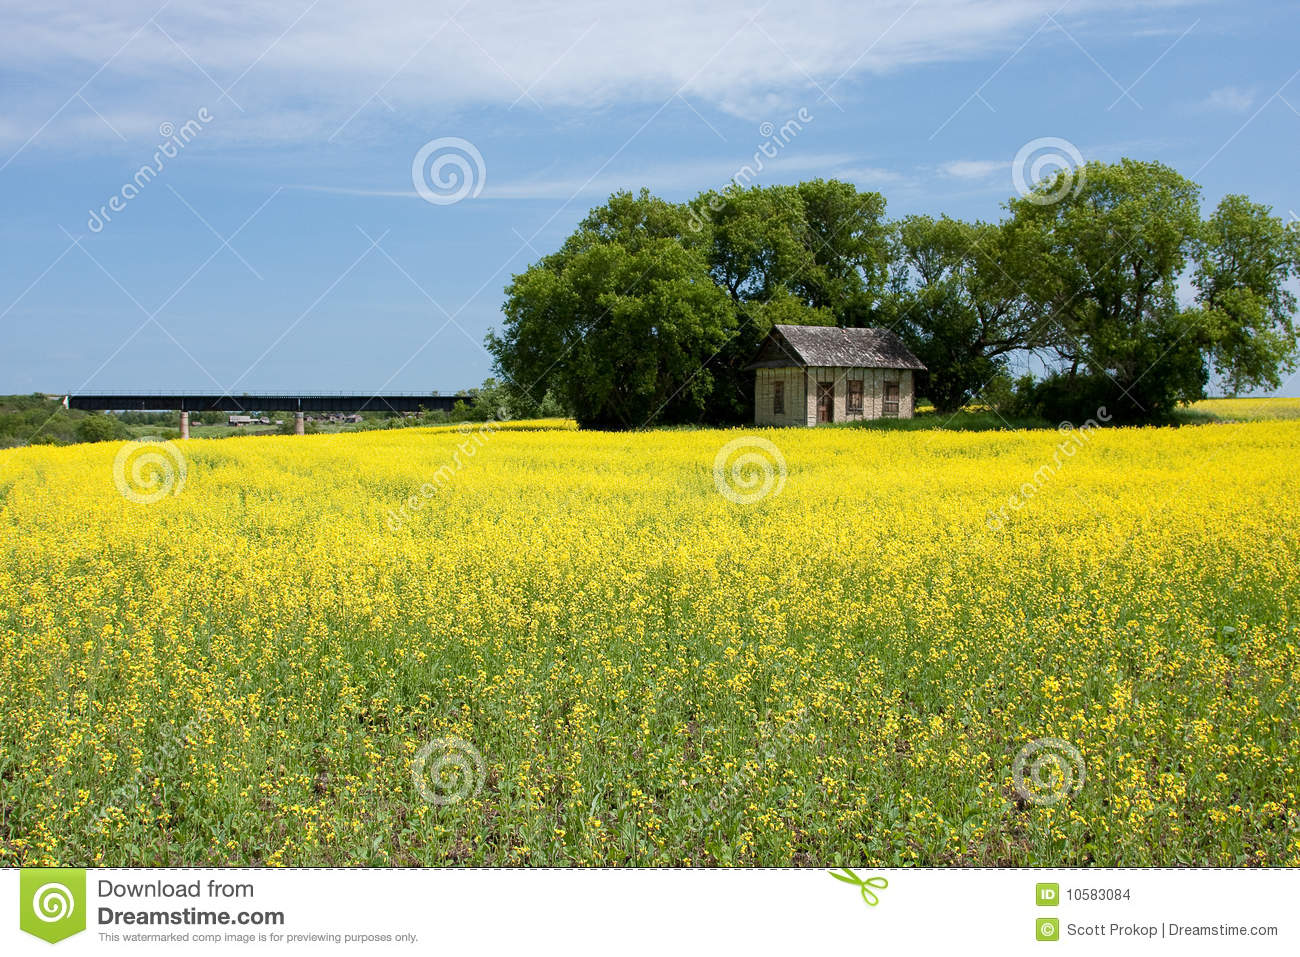 Surrounded By Canoloa Feilds Quotes: Canola Field With Old Farm House Stock Images